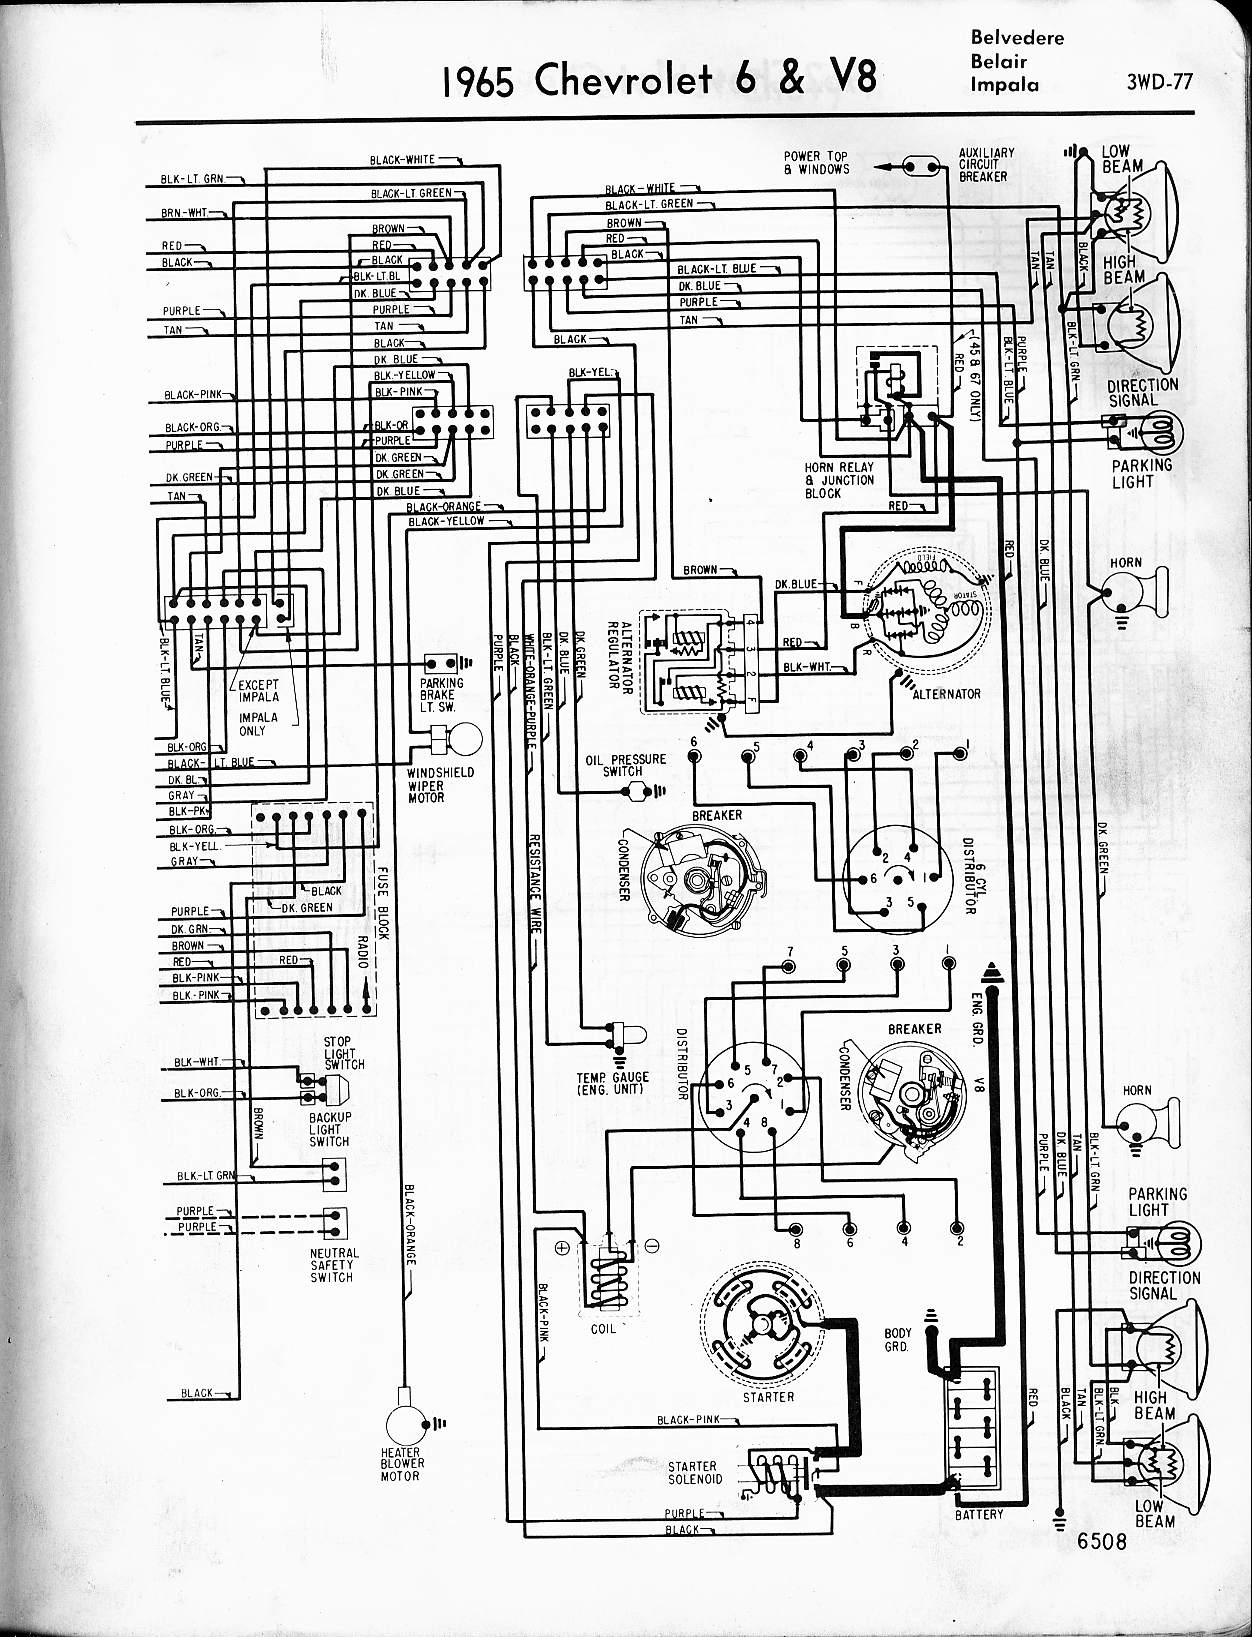 1985 El Camino Wiring Harness Diagram Libraries Truck 85 Chevy 1966 Simple Diagramchevy Diagrams Schematic